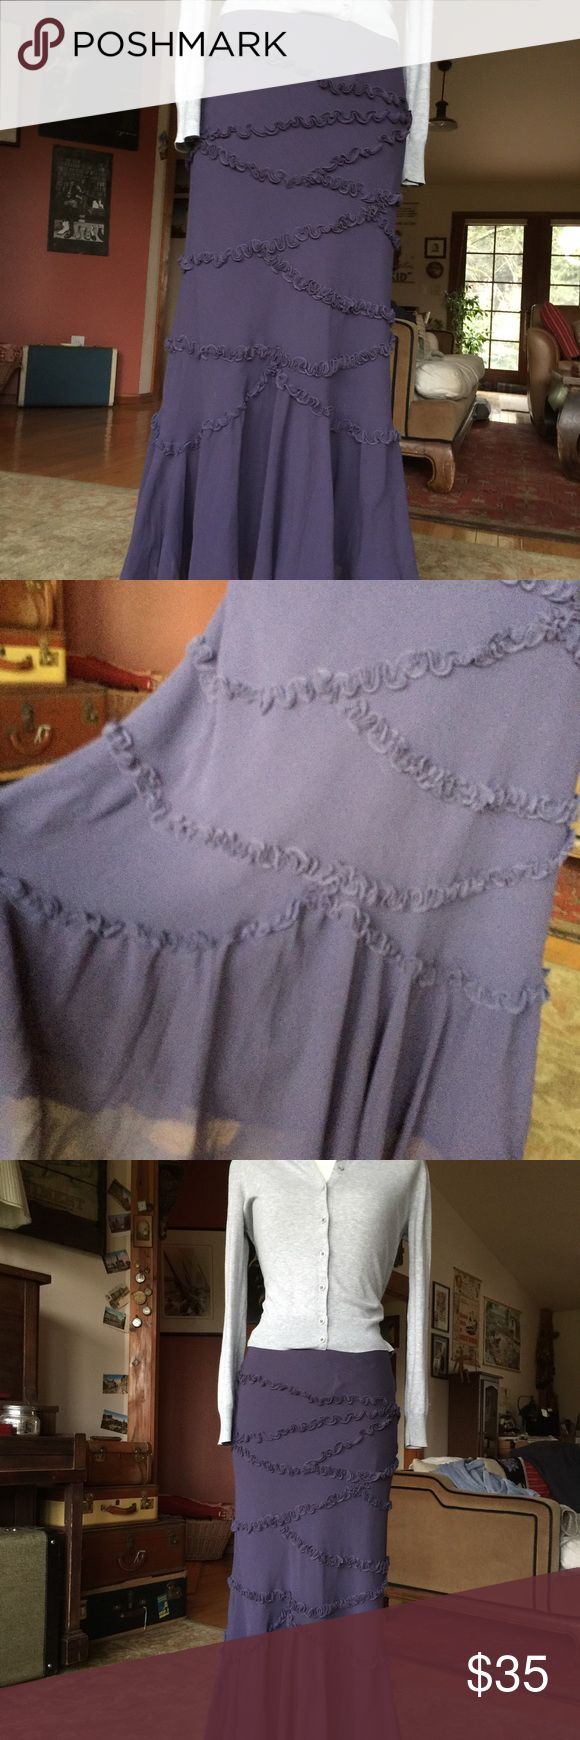 Anthropologie maxi skirt Flows, deep purple maxi skirt with under skirt attached. In EUC too big for me. Zipper to close on side. Anthropologie Skirts Maxi